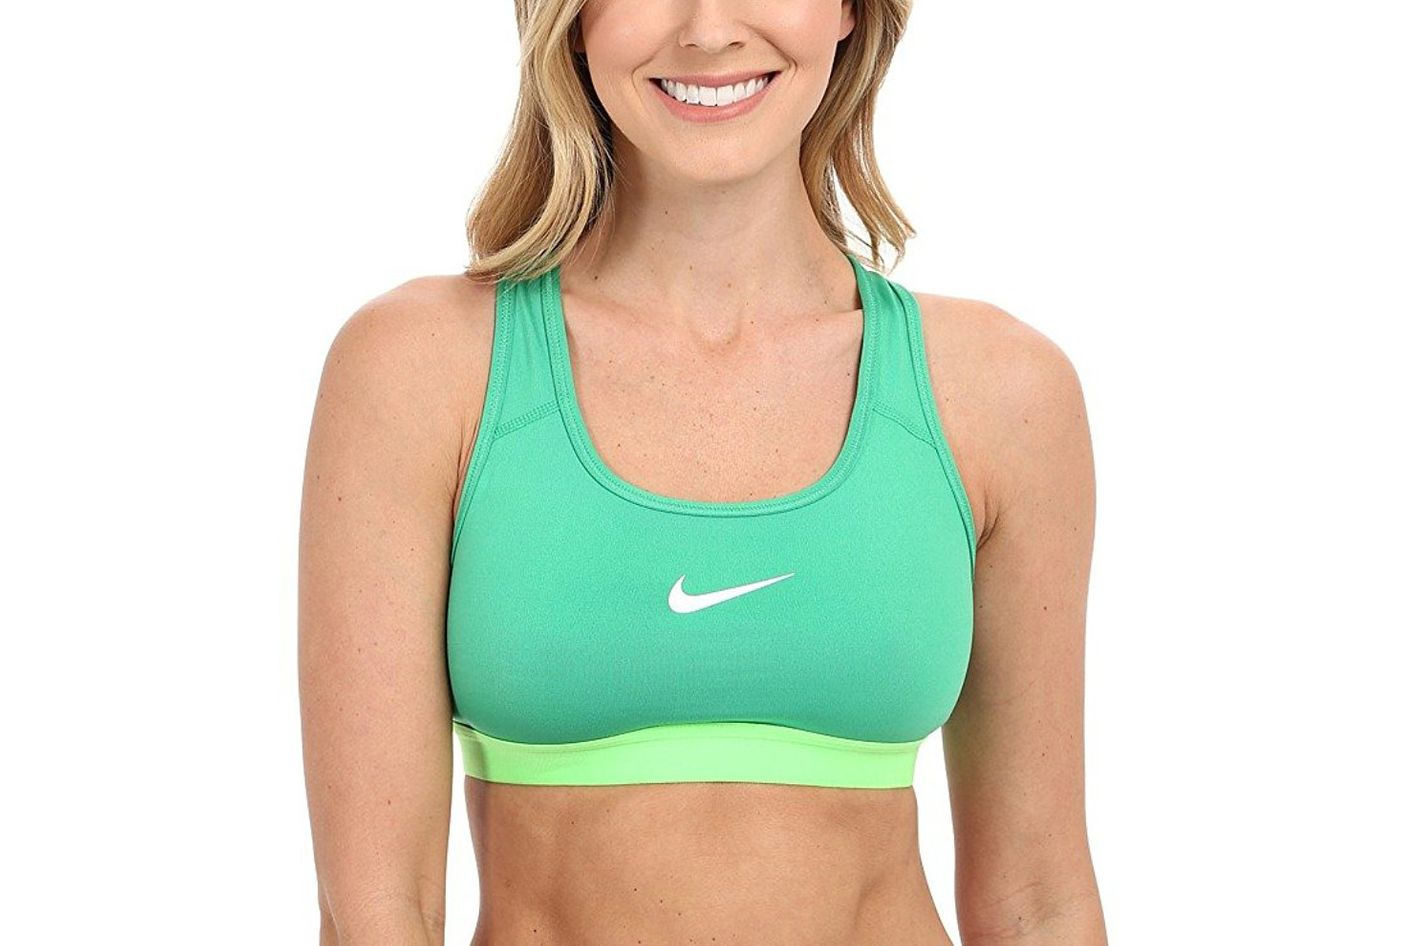 0008a4d8f7 Nike Women s Pro Classic Sports Bra at Amazon